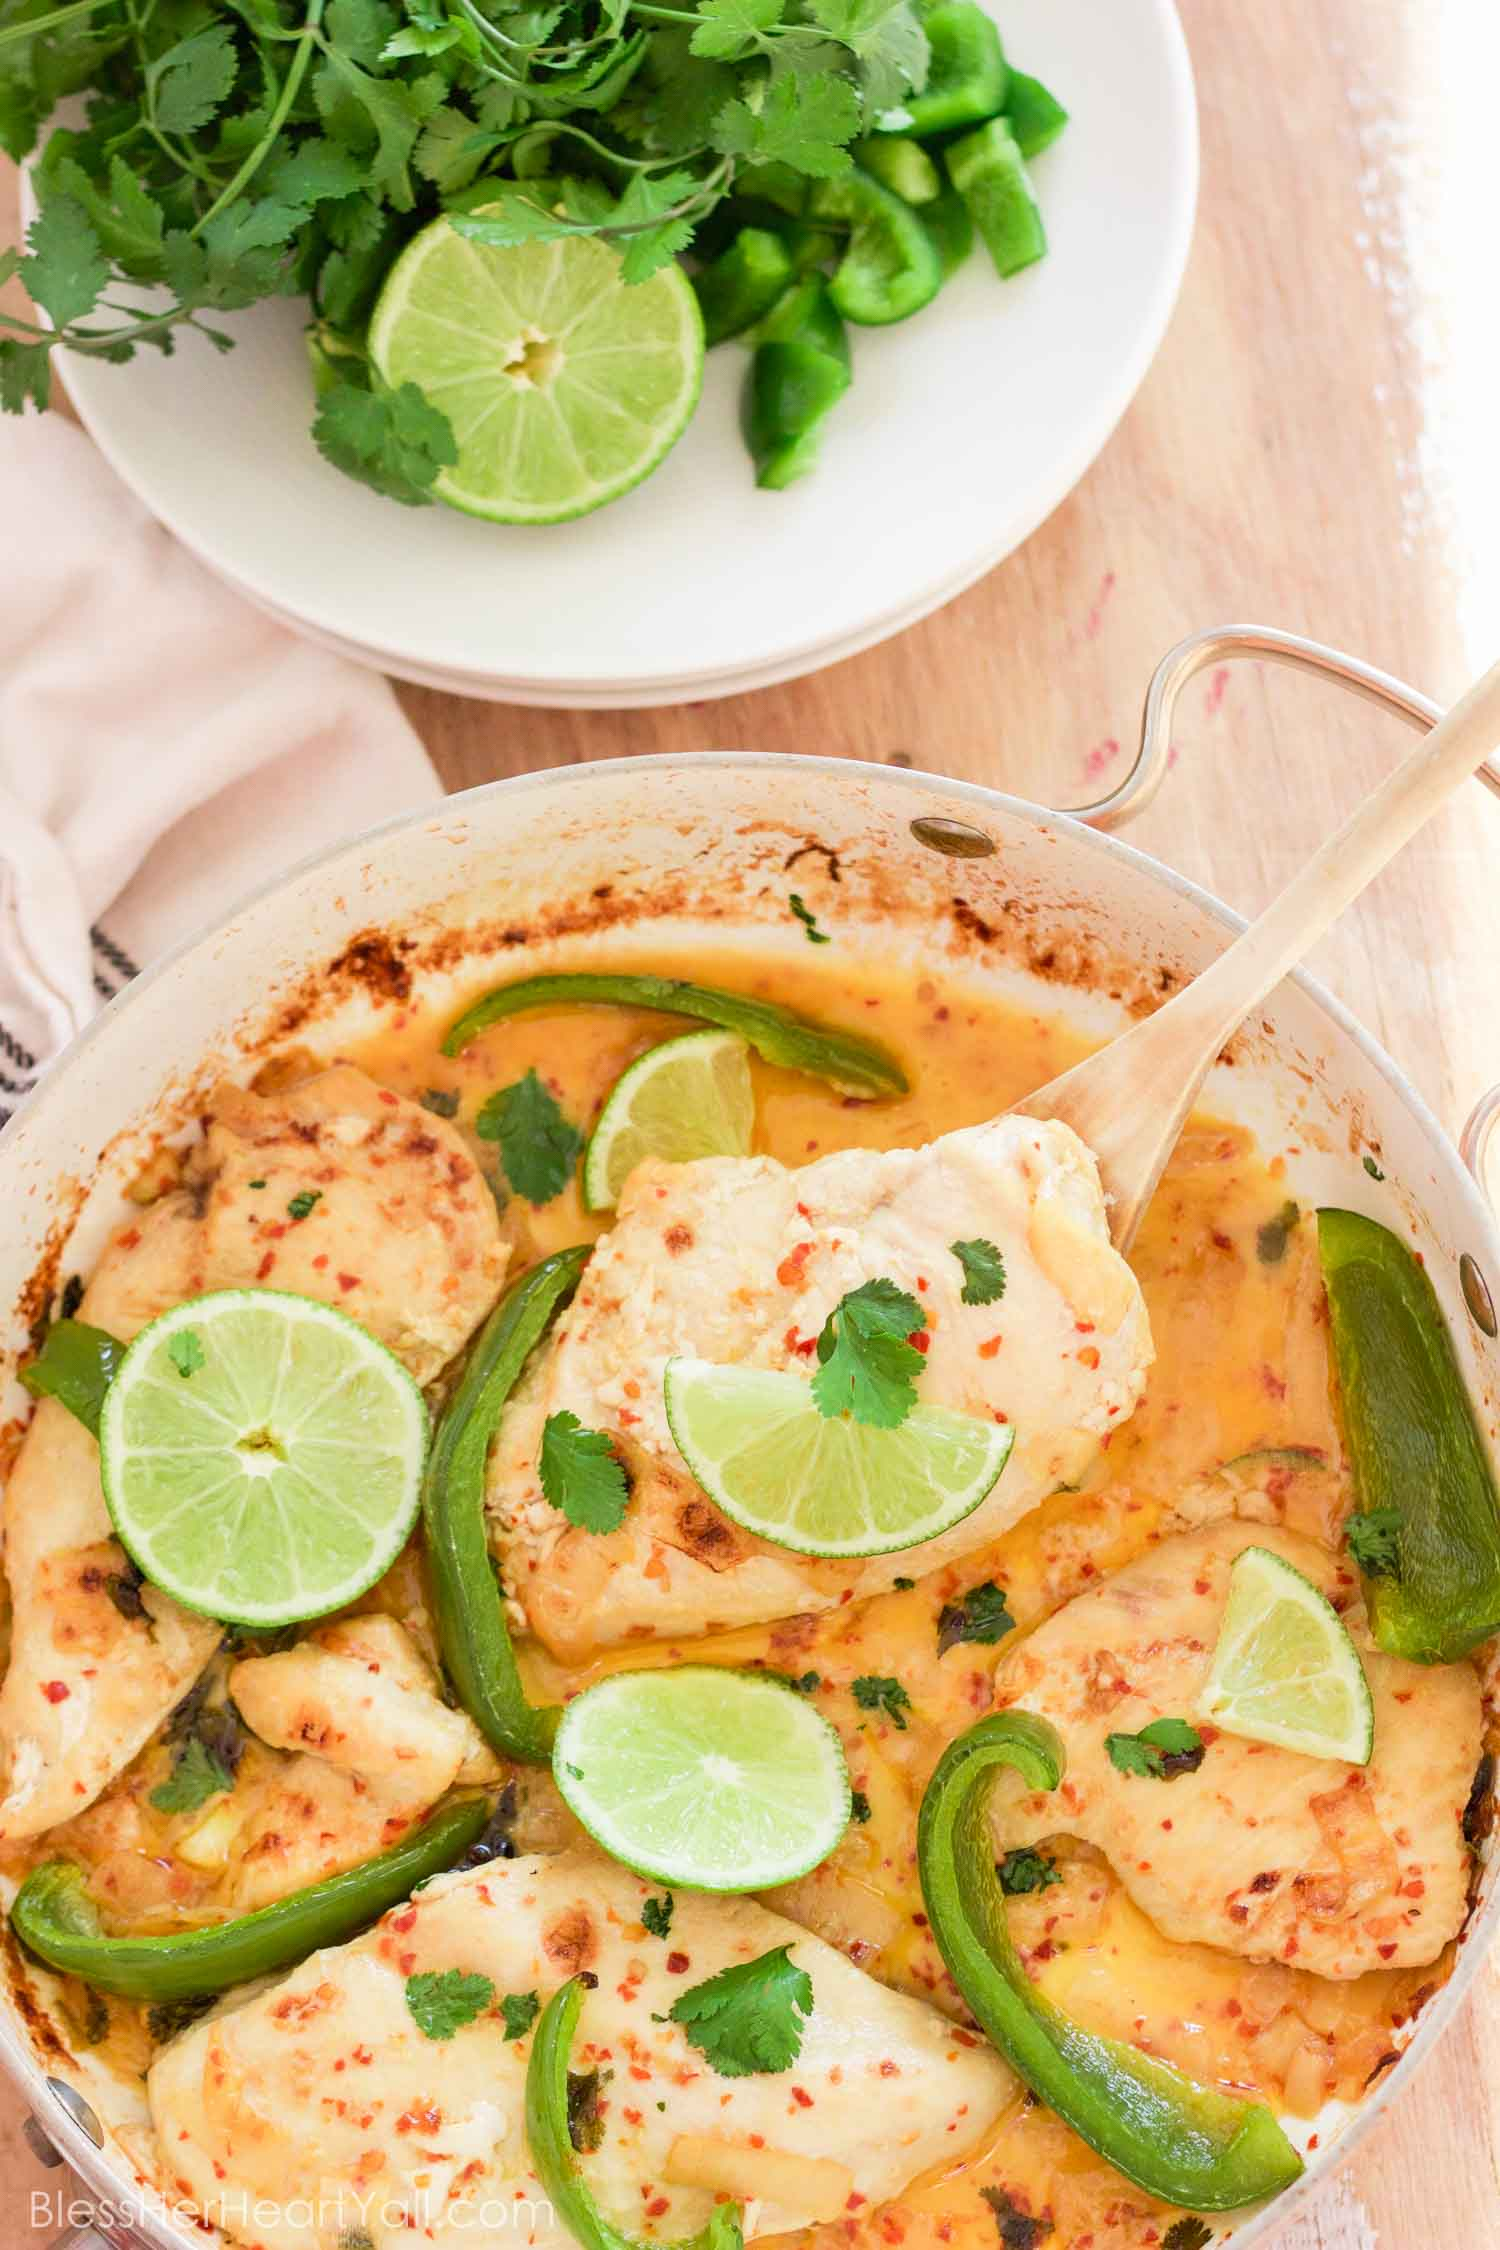 This gluten-free creamy cilantro lime chicken recipe combines the fresh flavors of cilantro, lime, and coconut, with the juiciness of baked chicken and veggies, perfect for warm weather! Your taste buds will think they were on a tropical island!